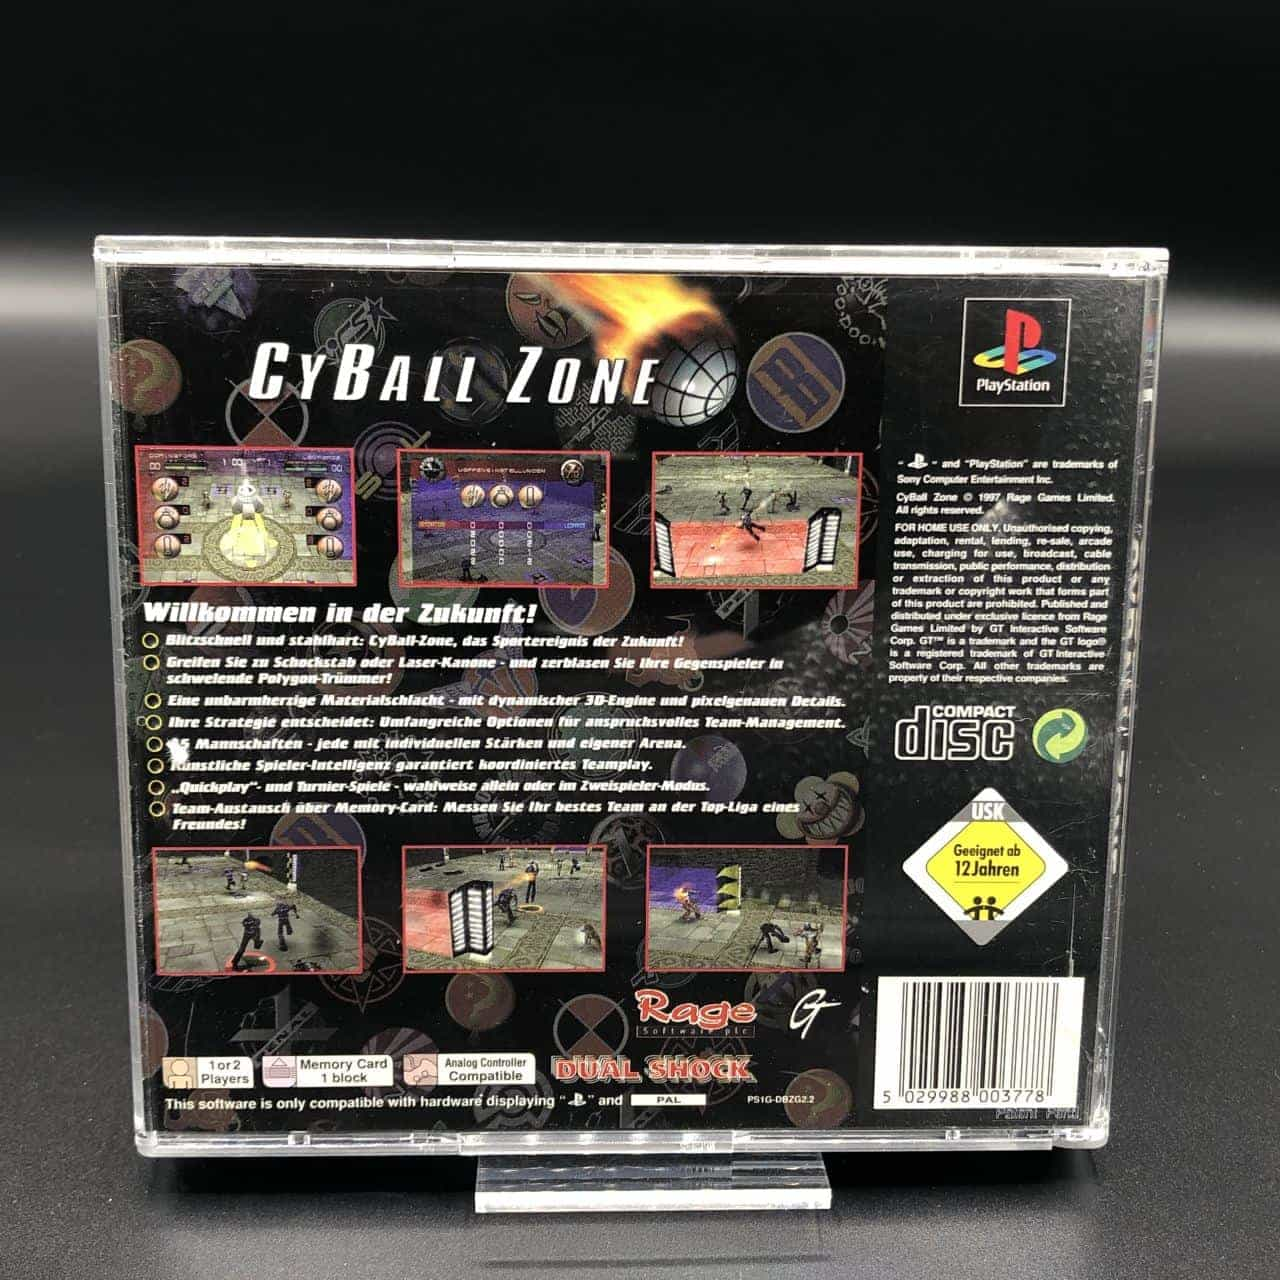 PS1 CBZ CyBall Zone (ohne Anleitung) (Gut) Sony PlayStation 1